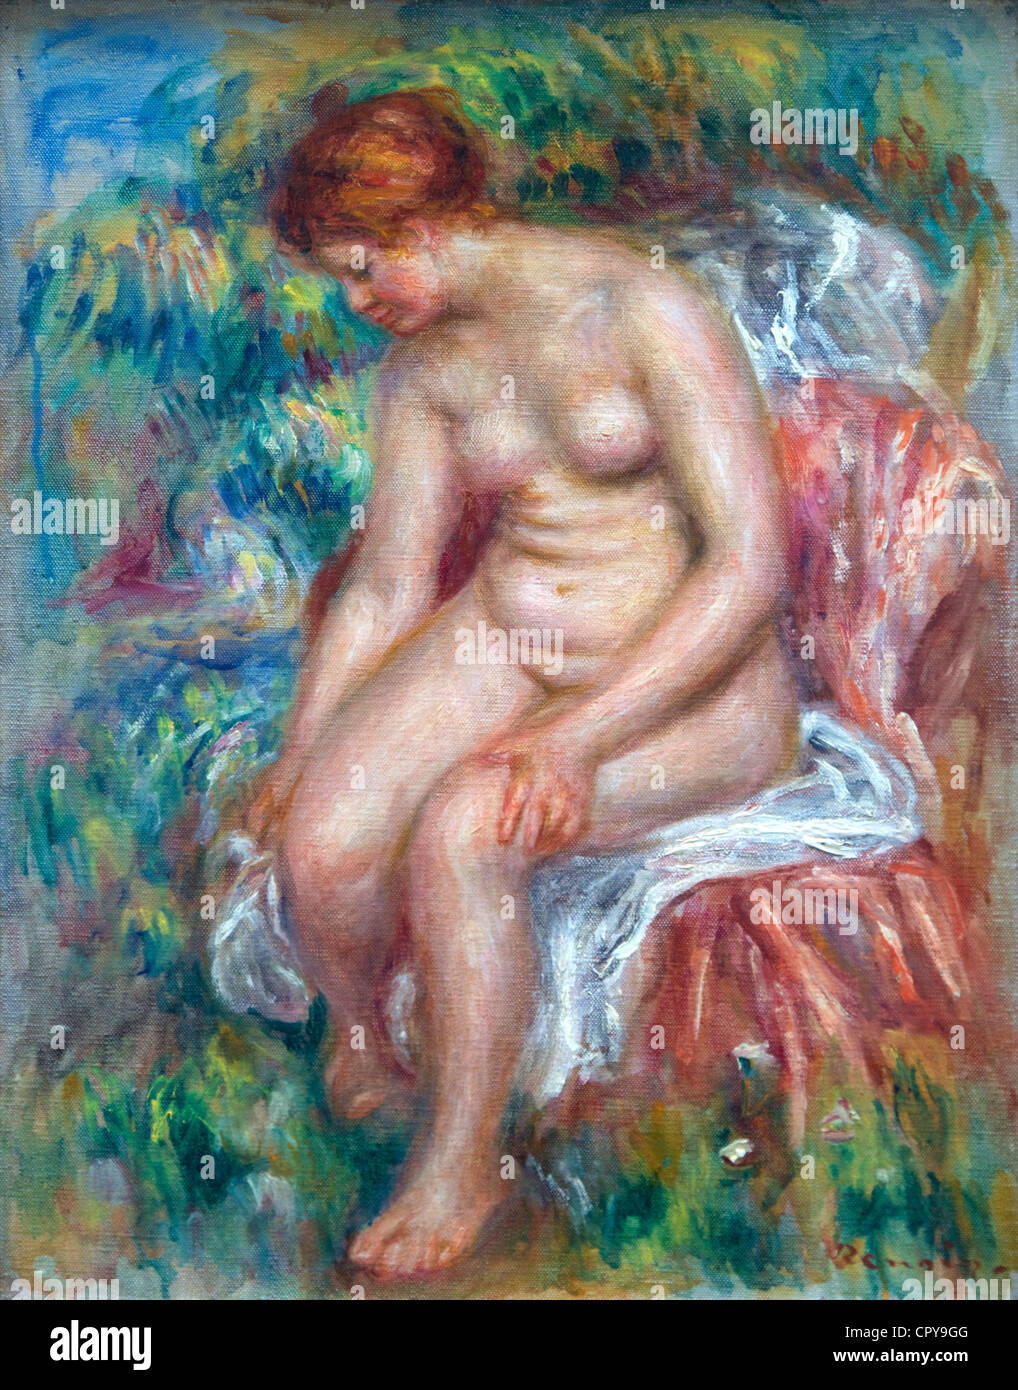 Bather washing her leg, by Pierre-Auguste Renoir, 1914, Musee de L'Orangerie Museum, Paris, France, Europe, - Stock Image